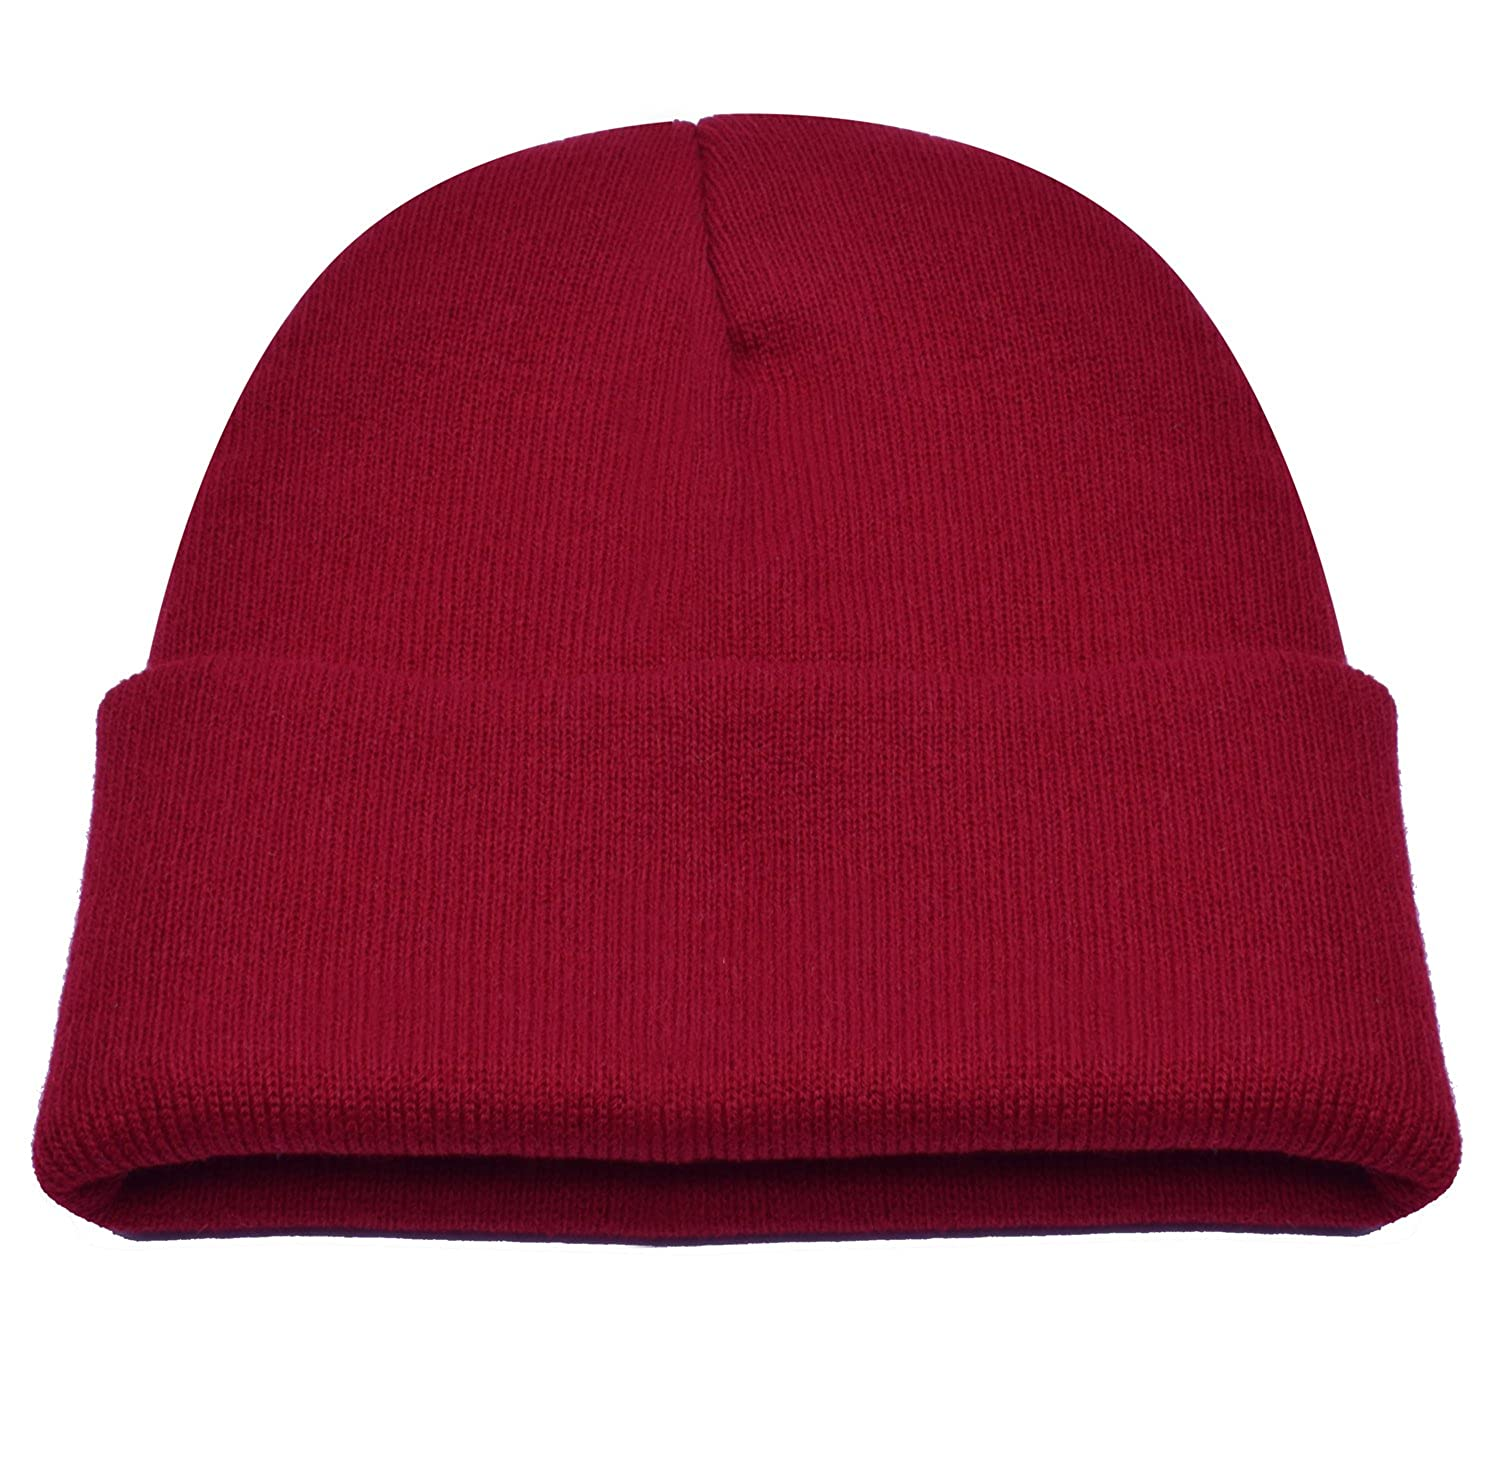 b7ddb8120d6 PZLE Knit Hat USA Sport Winter Hats Red Watch Cap Beanie Red Hat Caps Dark  Red at Amazon Men s Clothing store